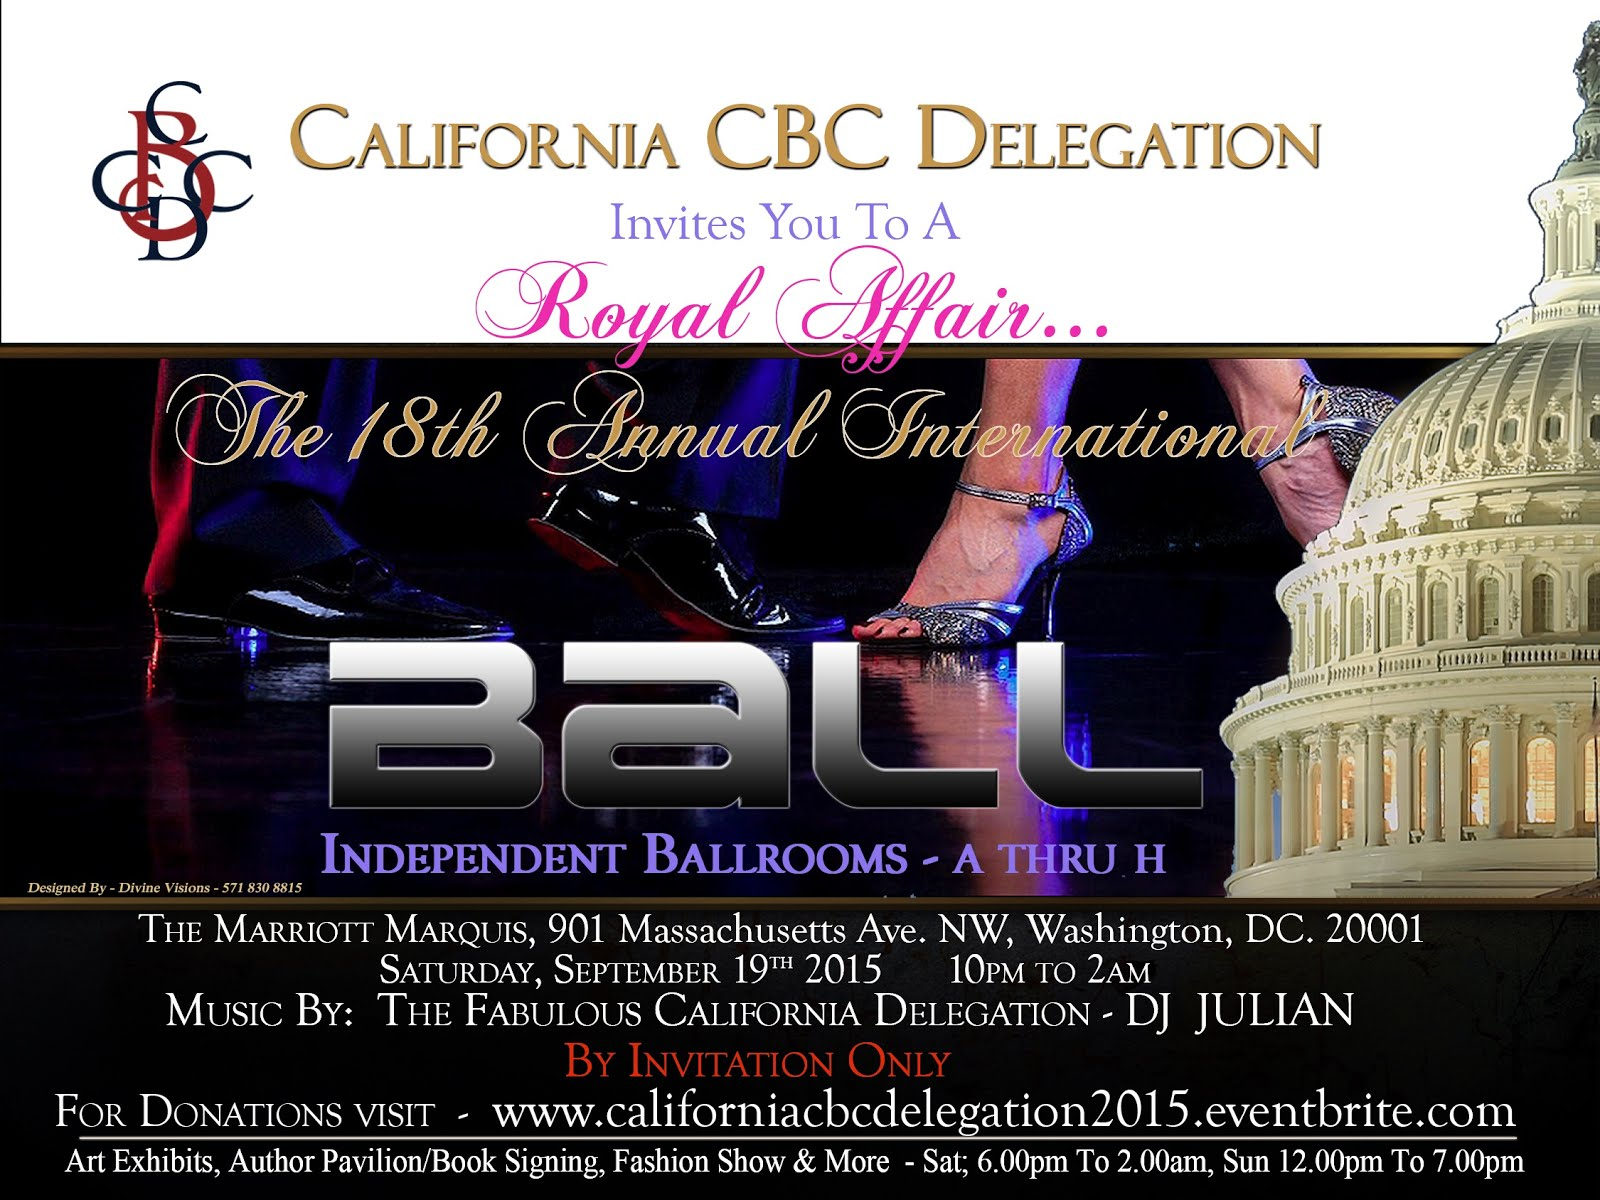 California Party General Admission Invitation - Please make Donations Below!